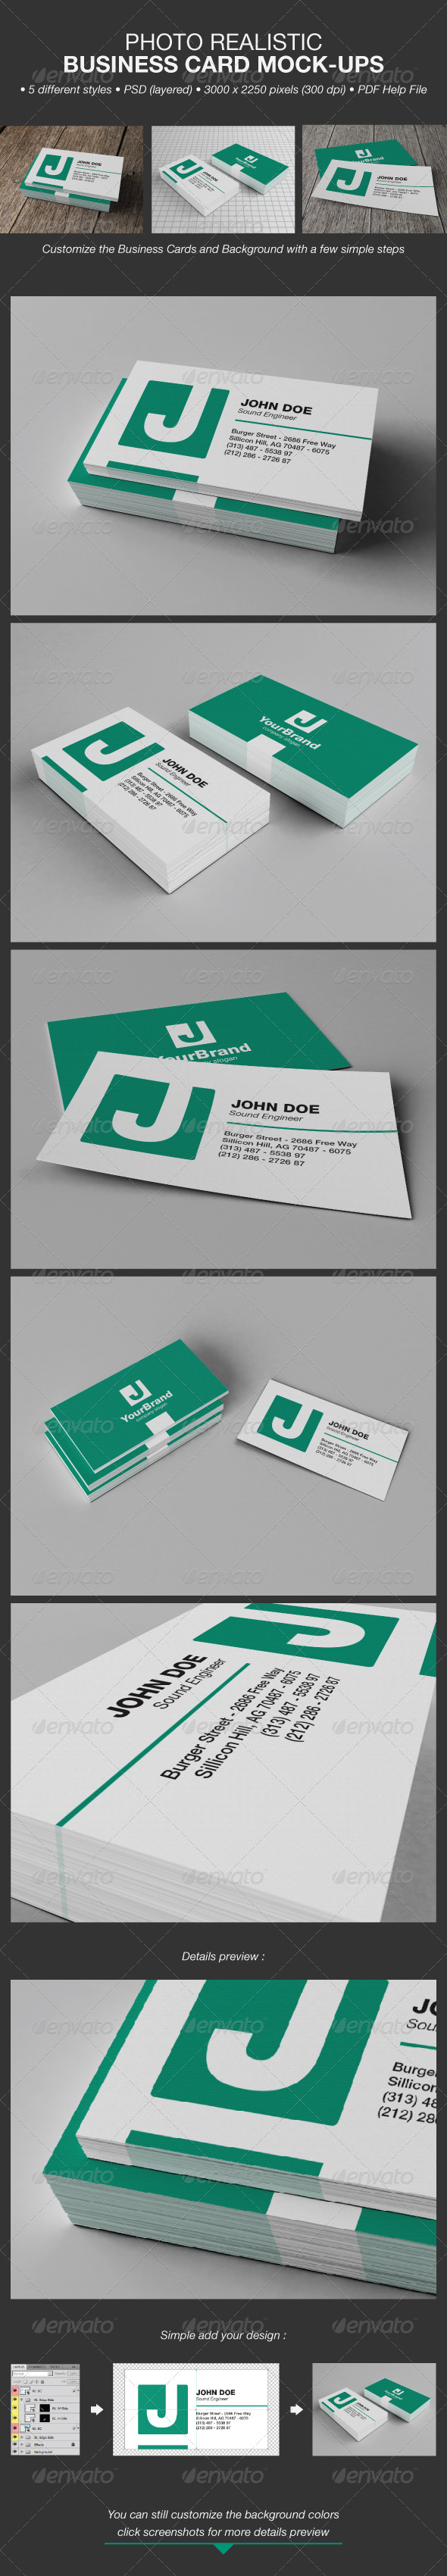 Photo Realistic Business Card Mock-Ups - Business Cards Print